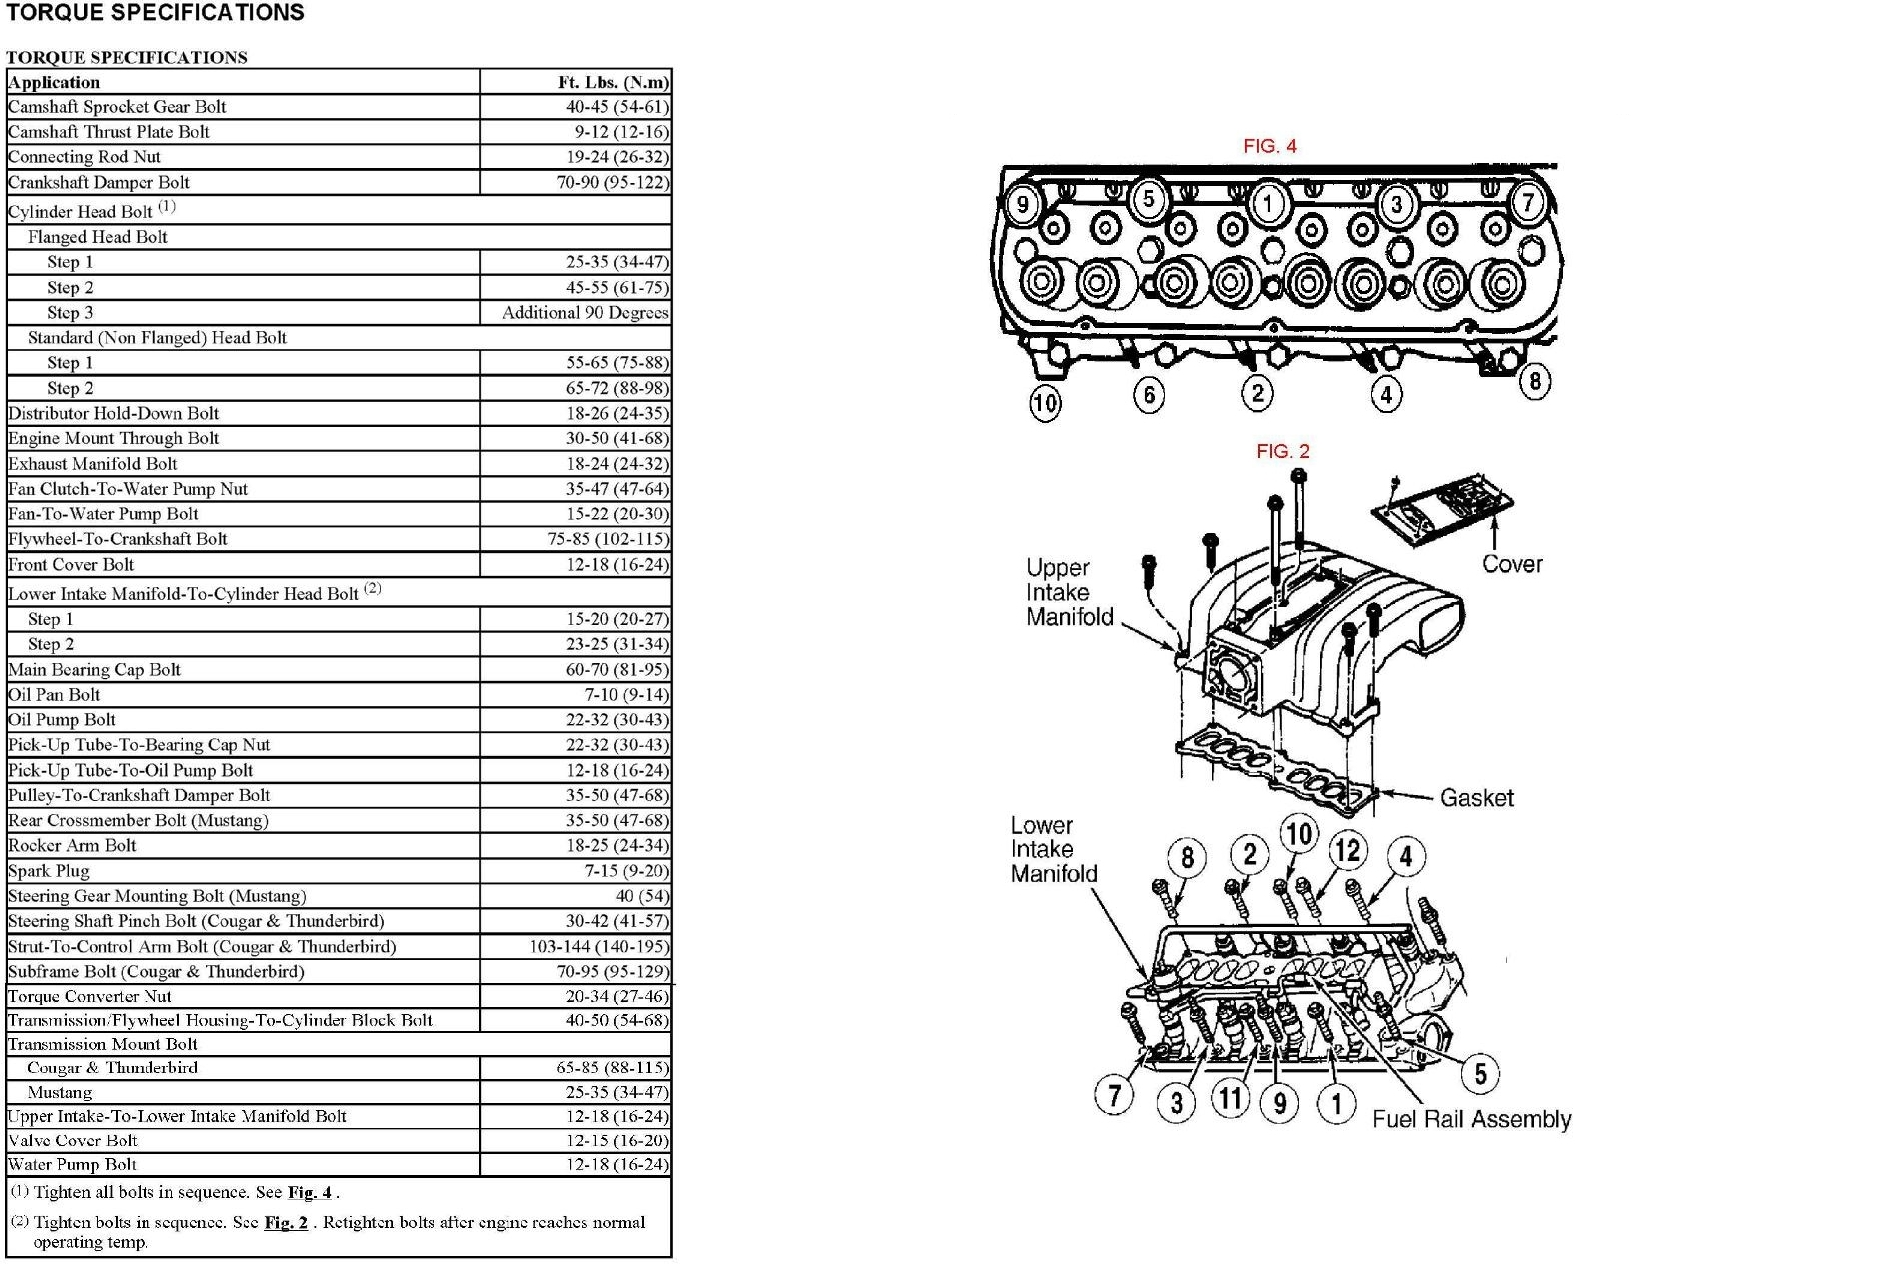 Torquespecs on 289 Spark Plug Wiring Diagram